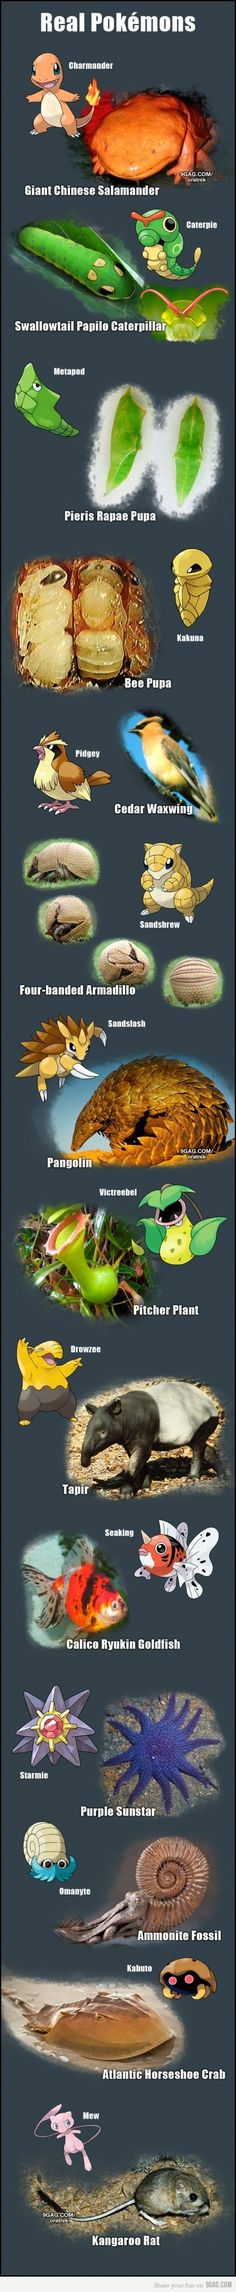 Real life Pokemon...sign if only! haha